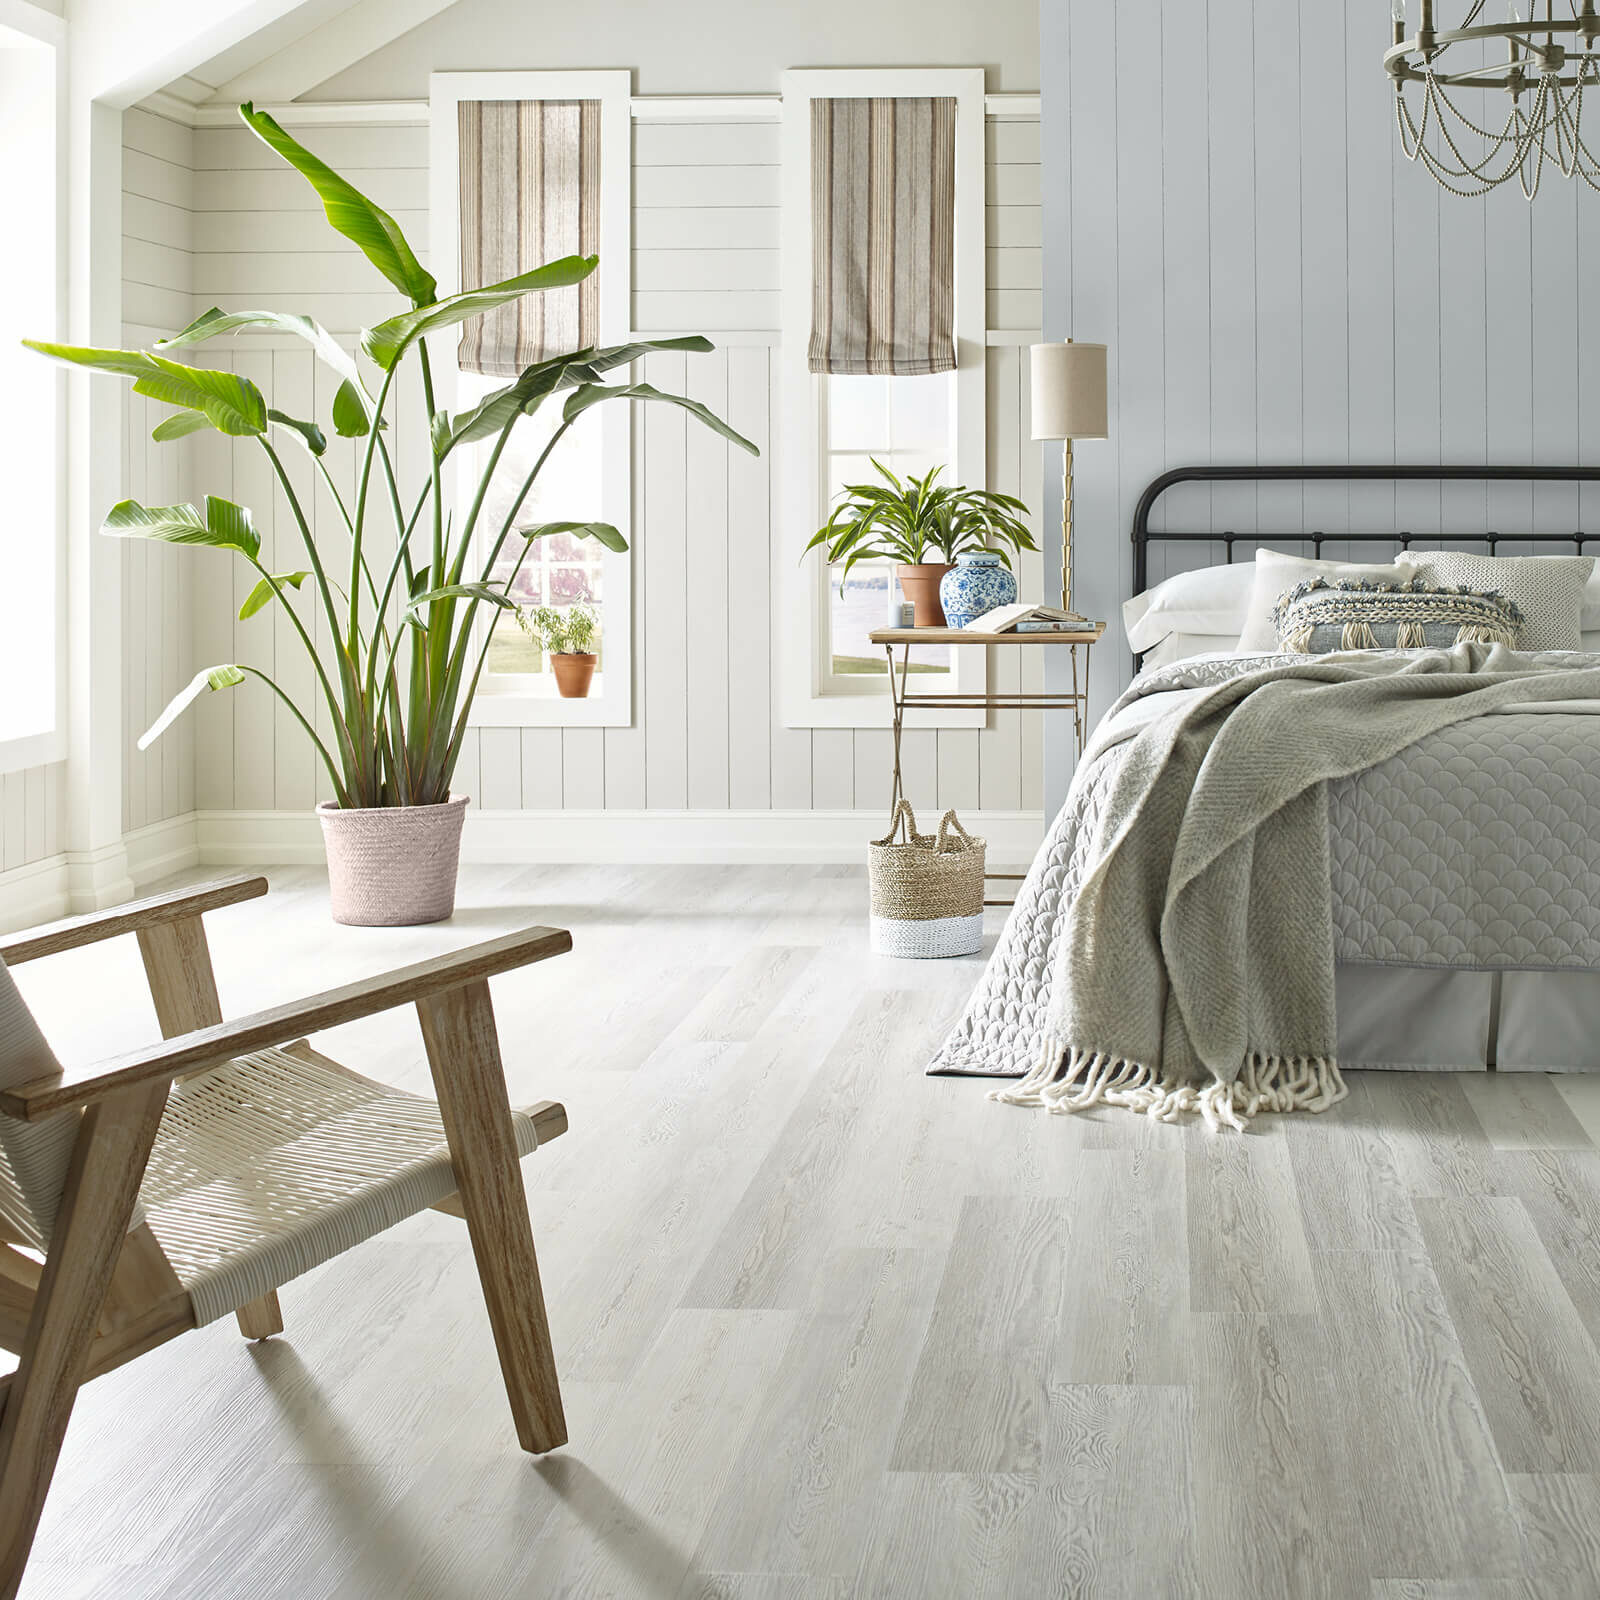 Vinyl flooring | The Flooring Place